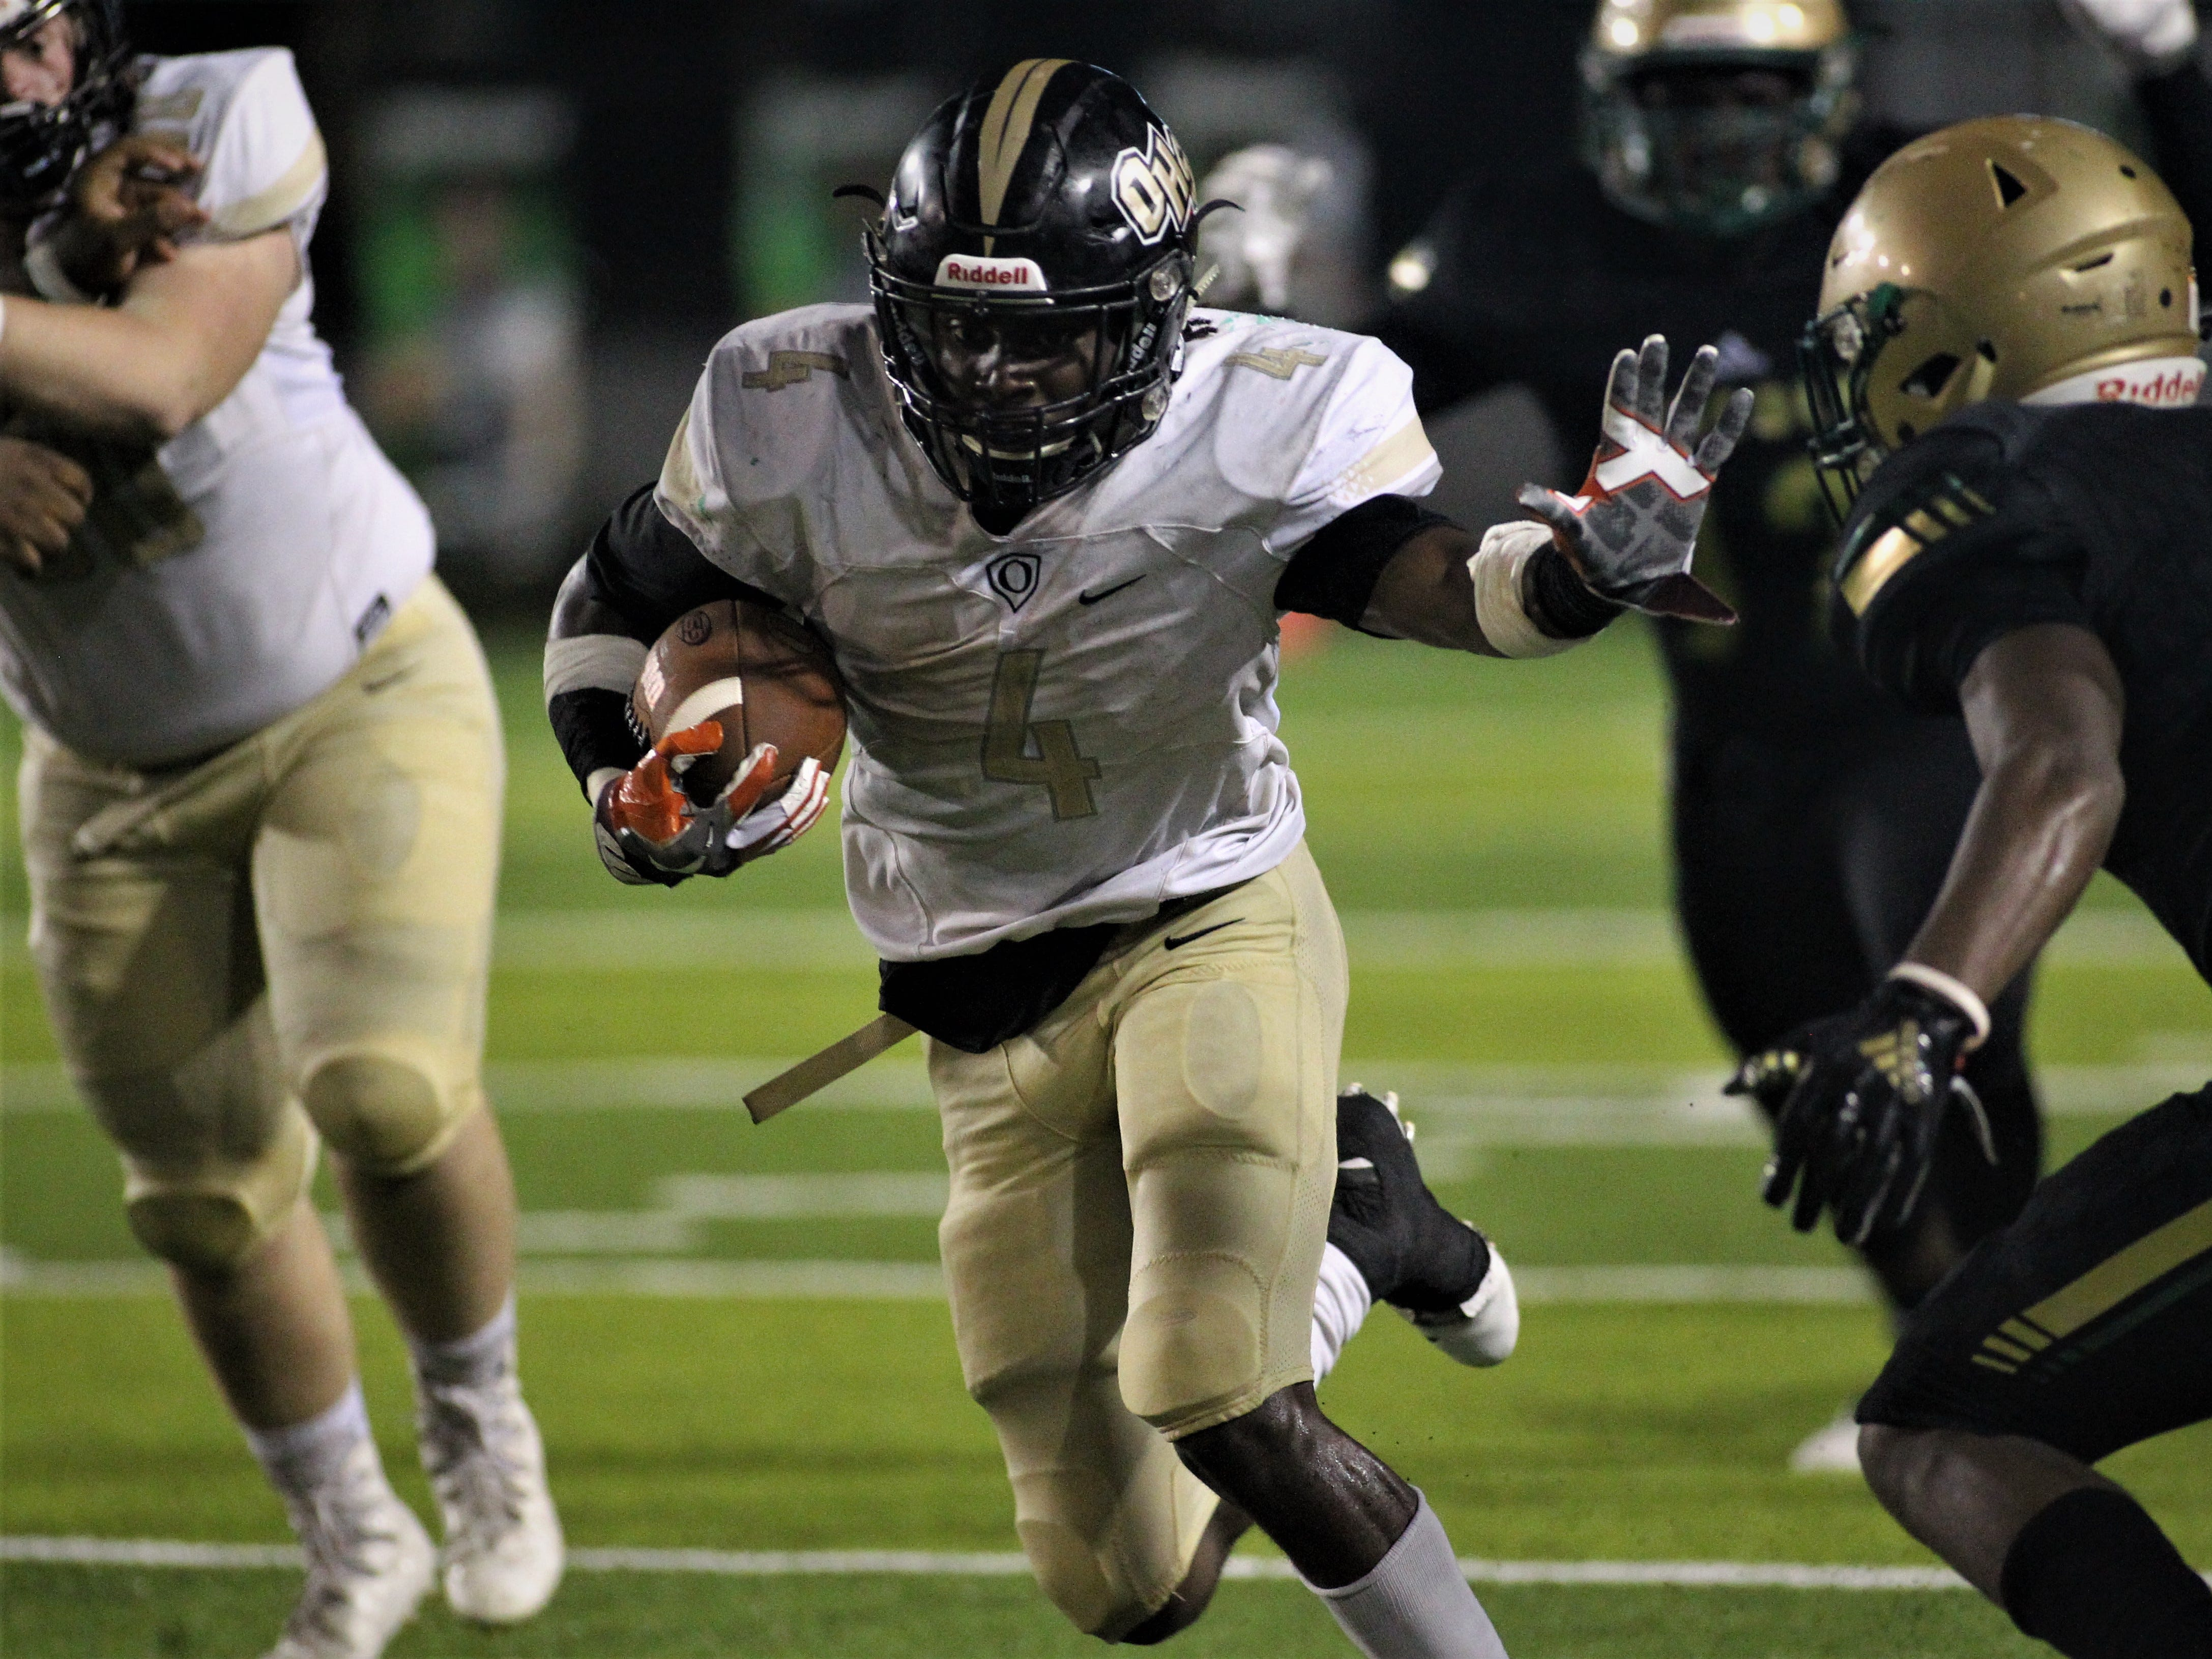 Oakleaf running back Keshawn King prepares to stiff arm a defender, but Lincoln beat Oakleaf 38-31 in three overtime periods during a Region 1-7A quarterfinal Thursday night at Gene Cox Stadium.